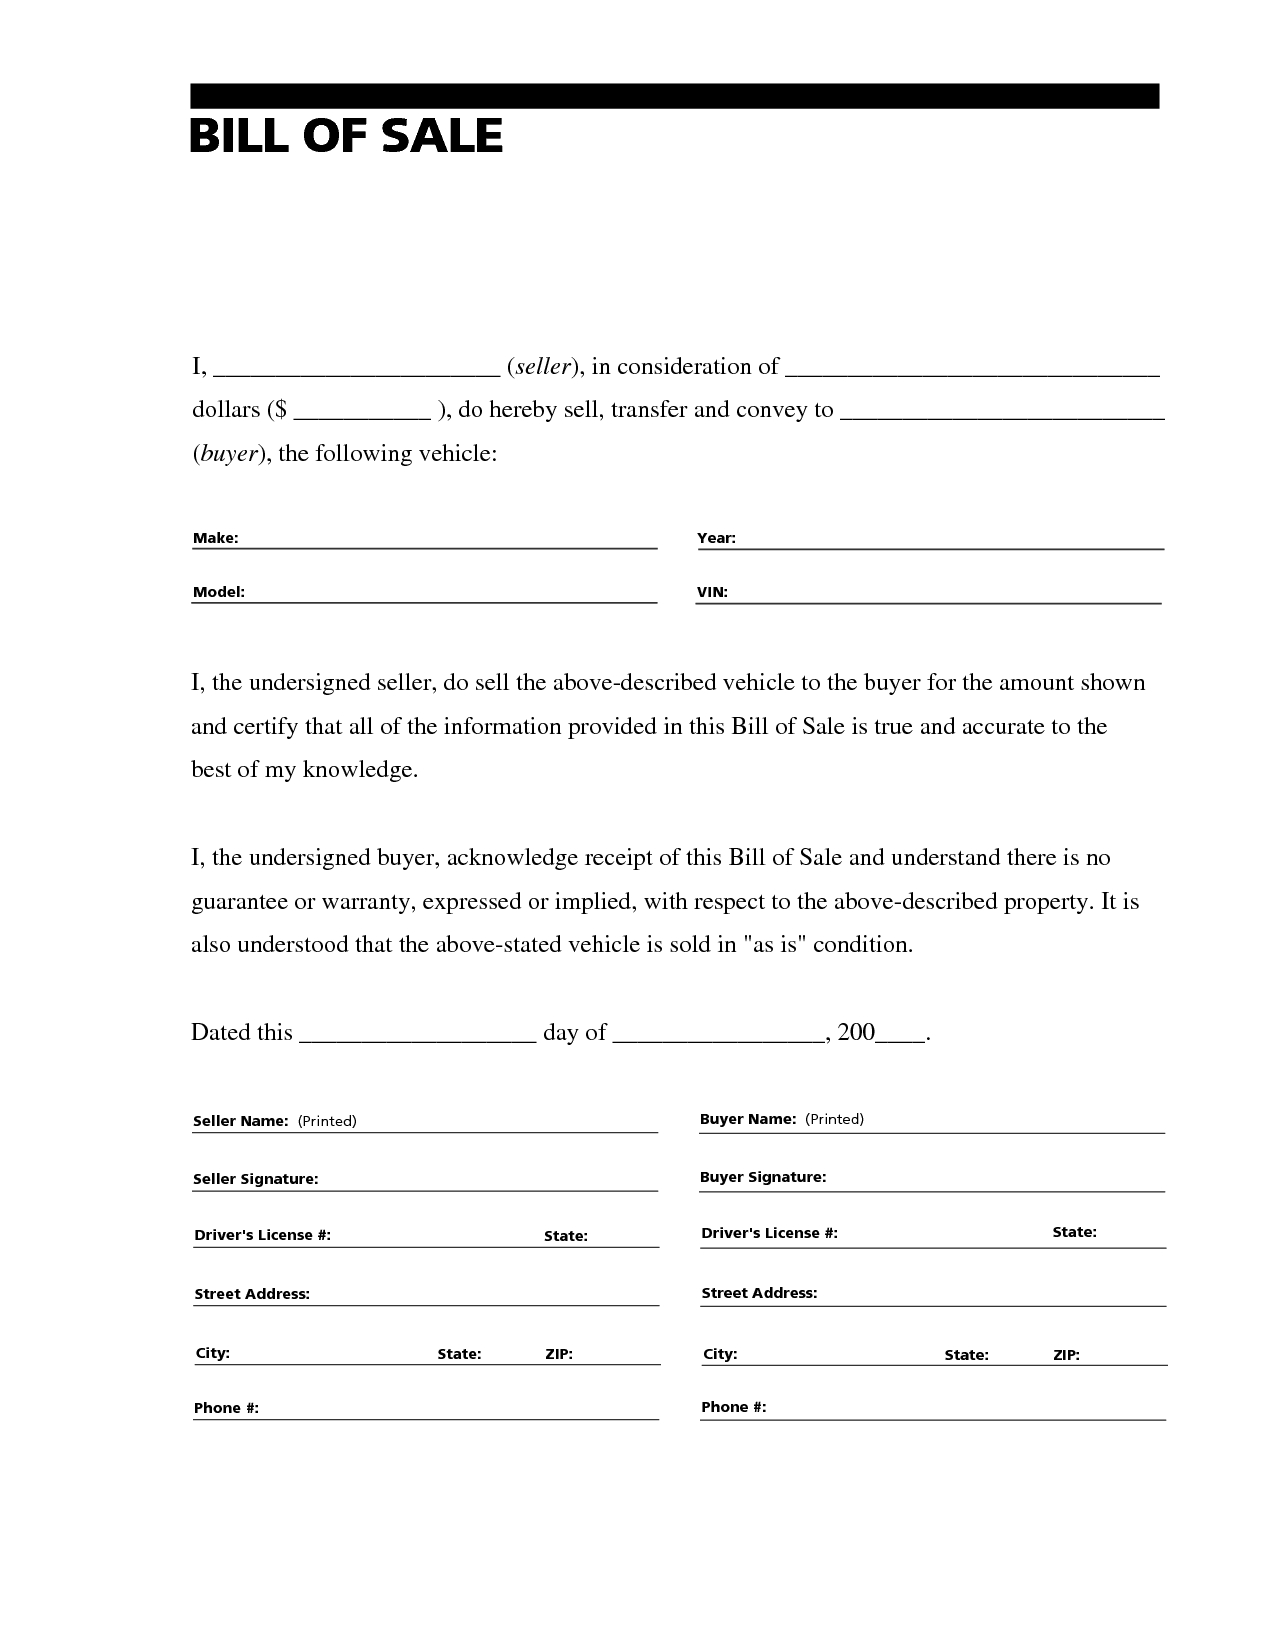 free new hampshire car vehicle bill of sale form pdf word doc